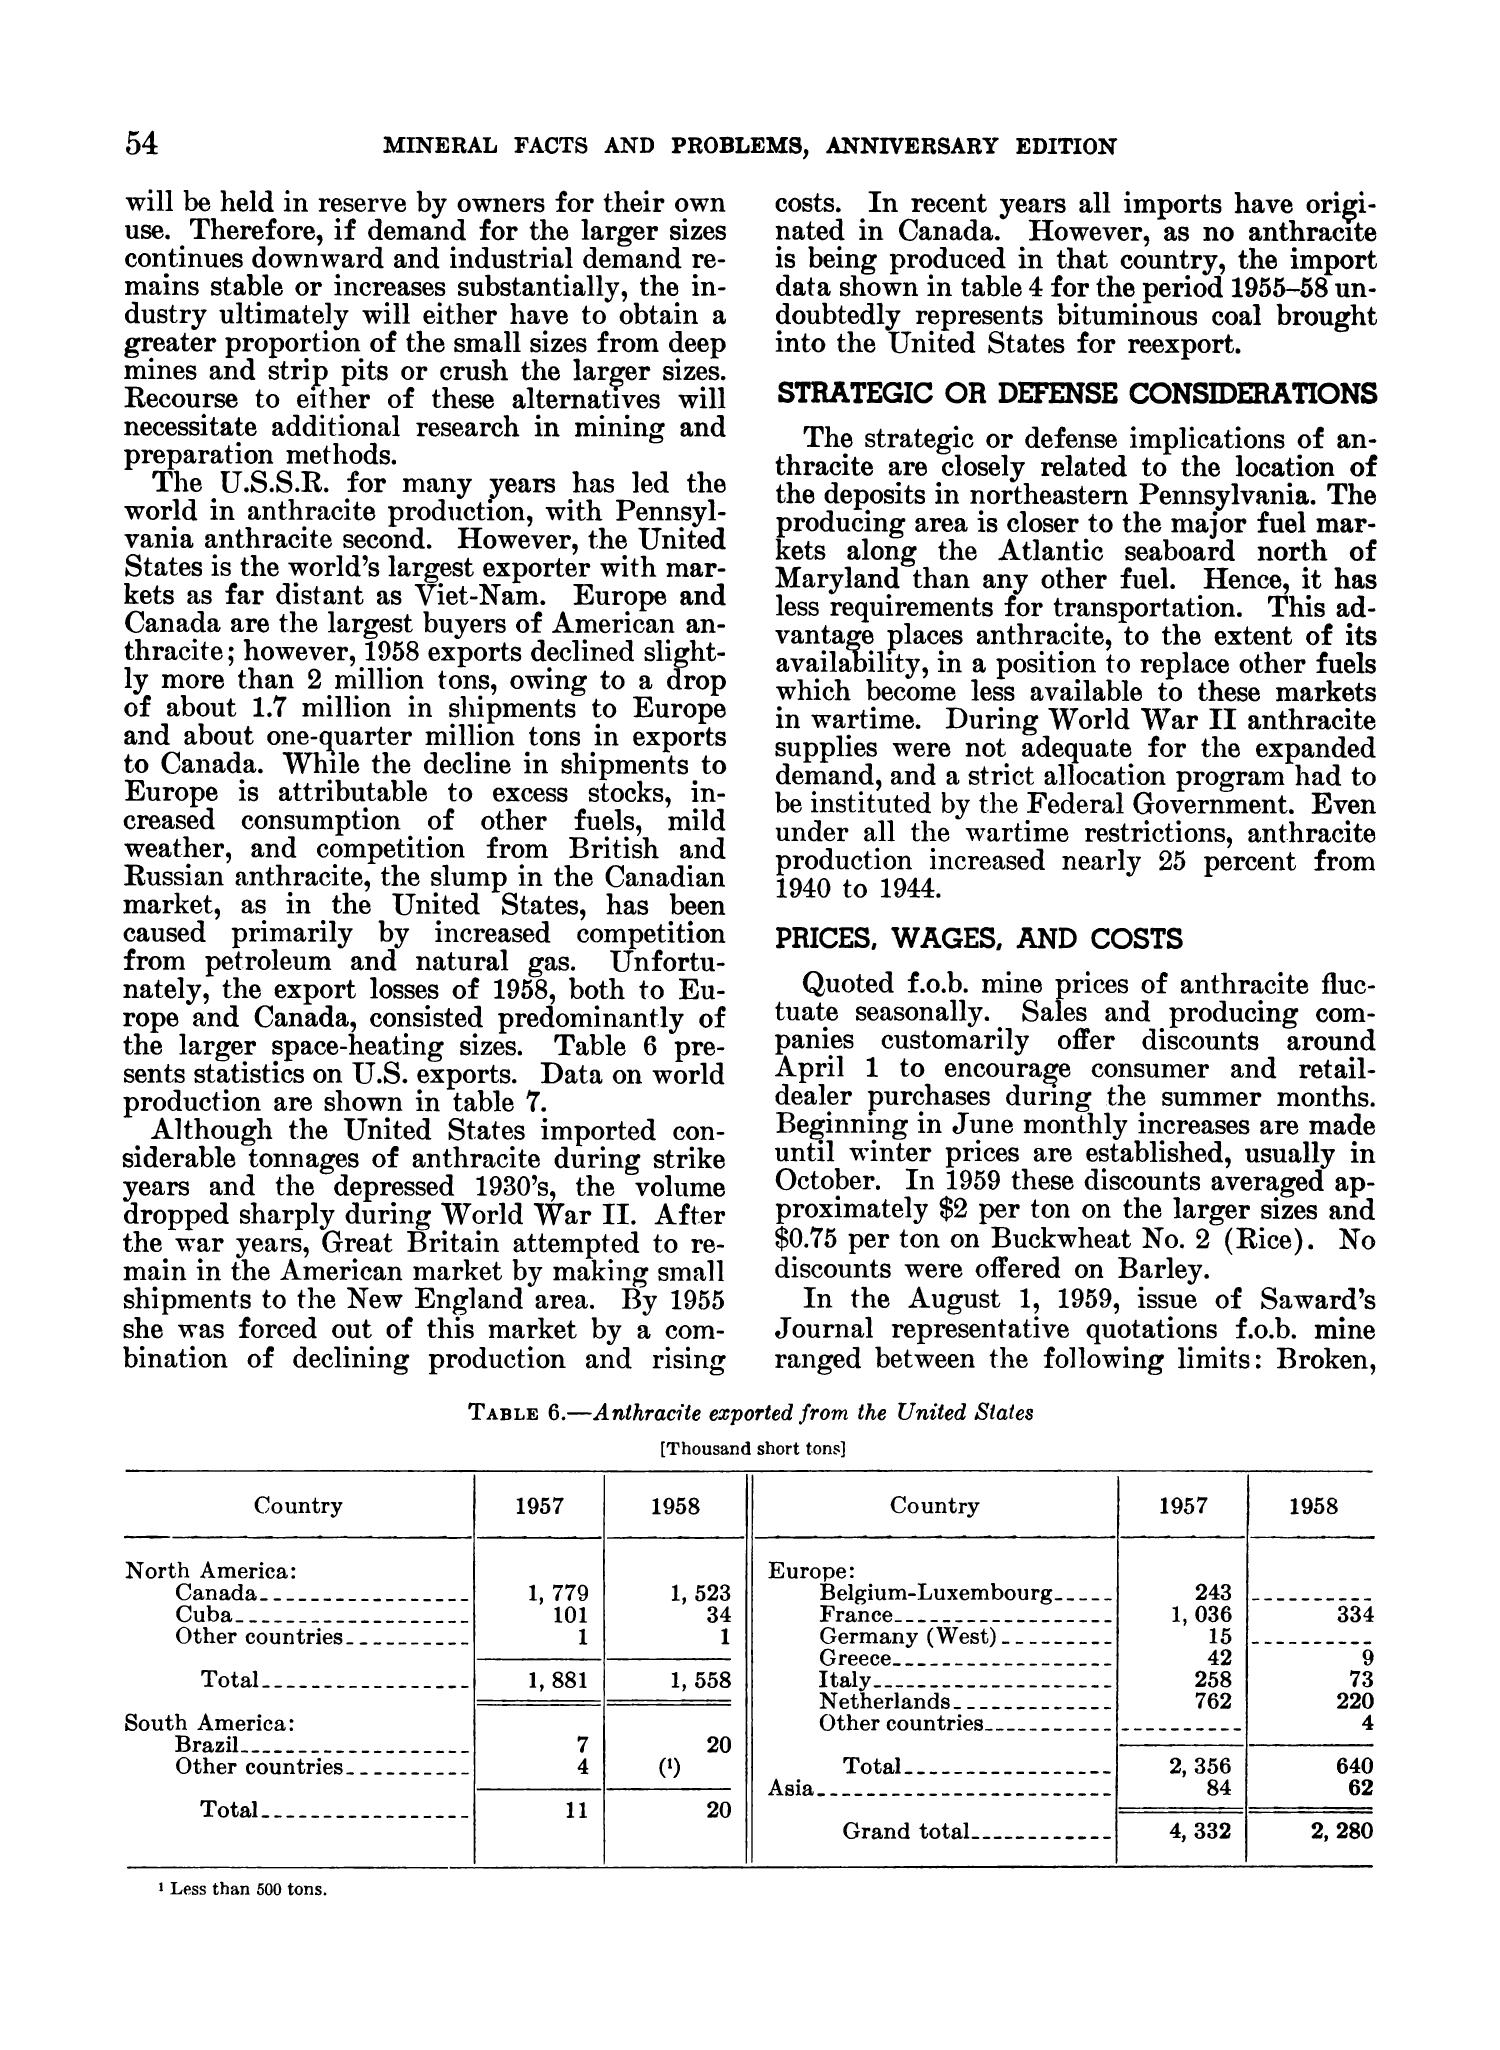 Mineral Facts and Problems: 1960 Edition                                                                                                      54